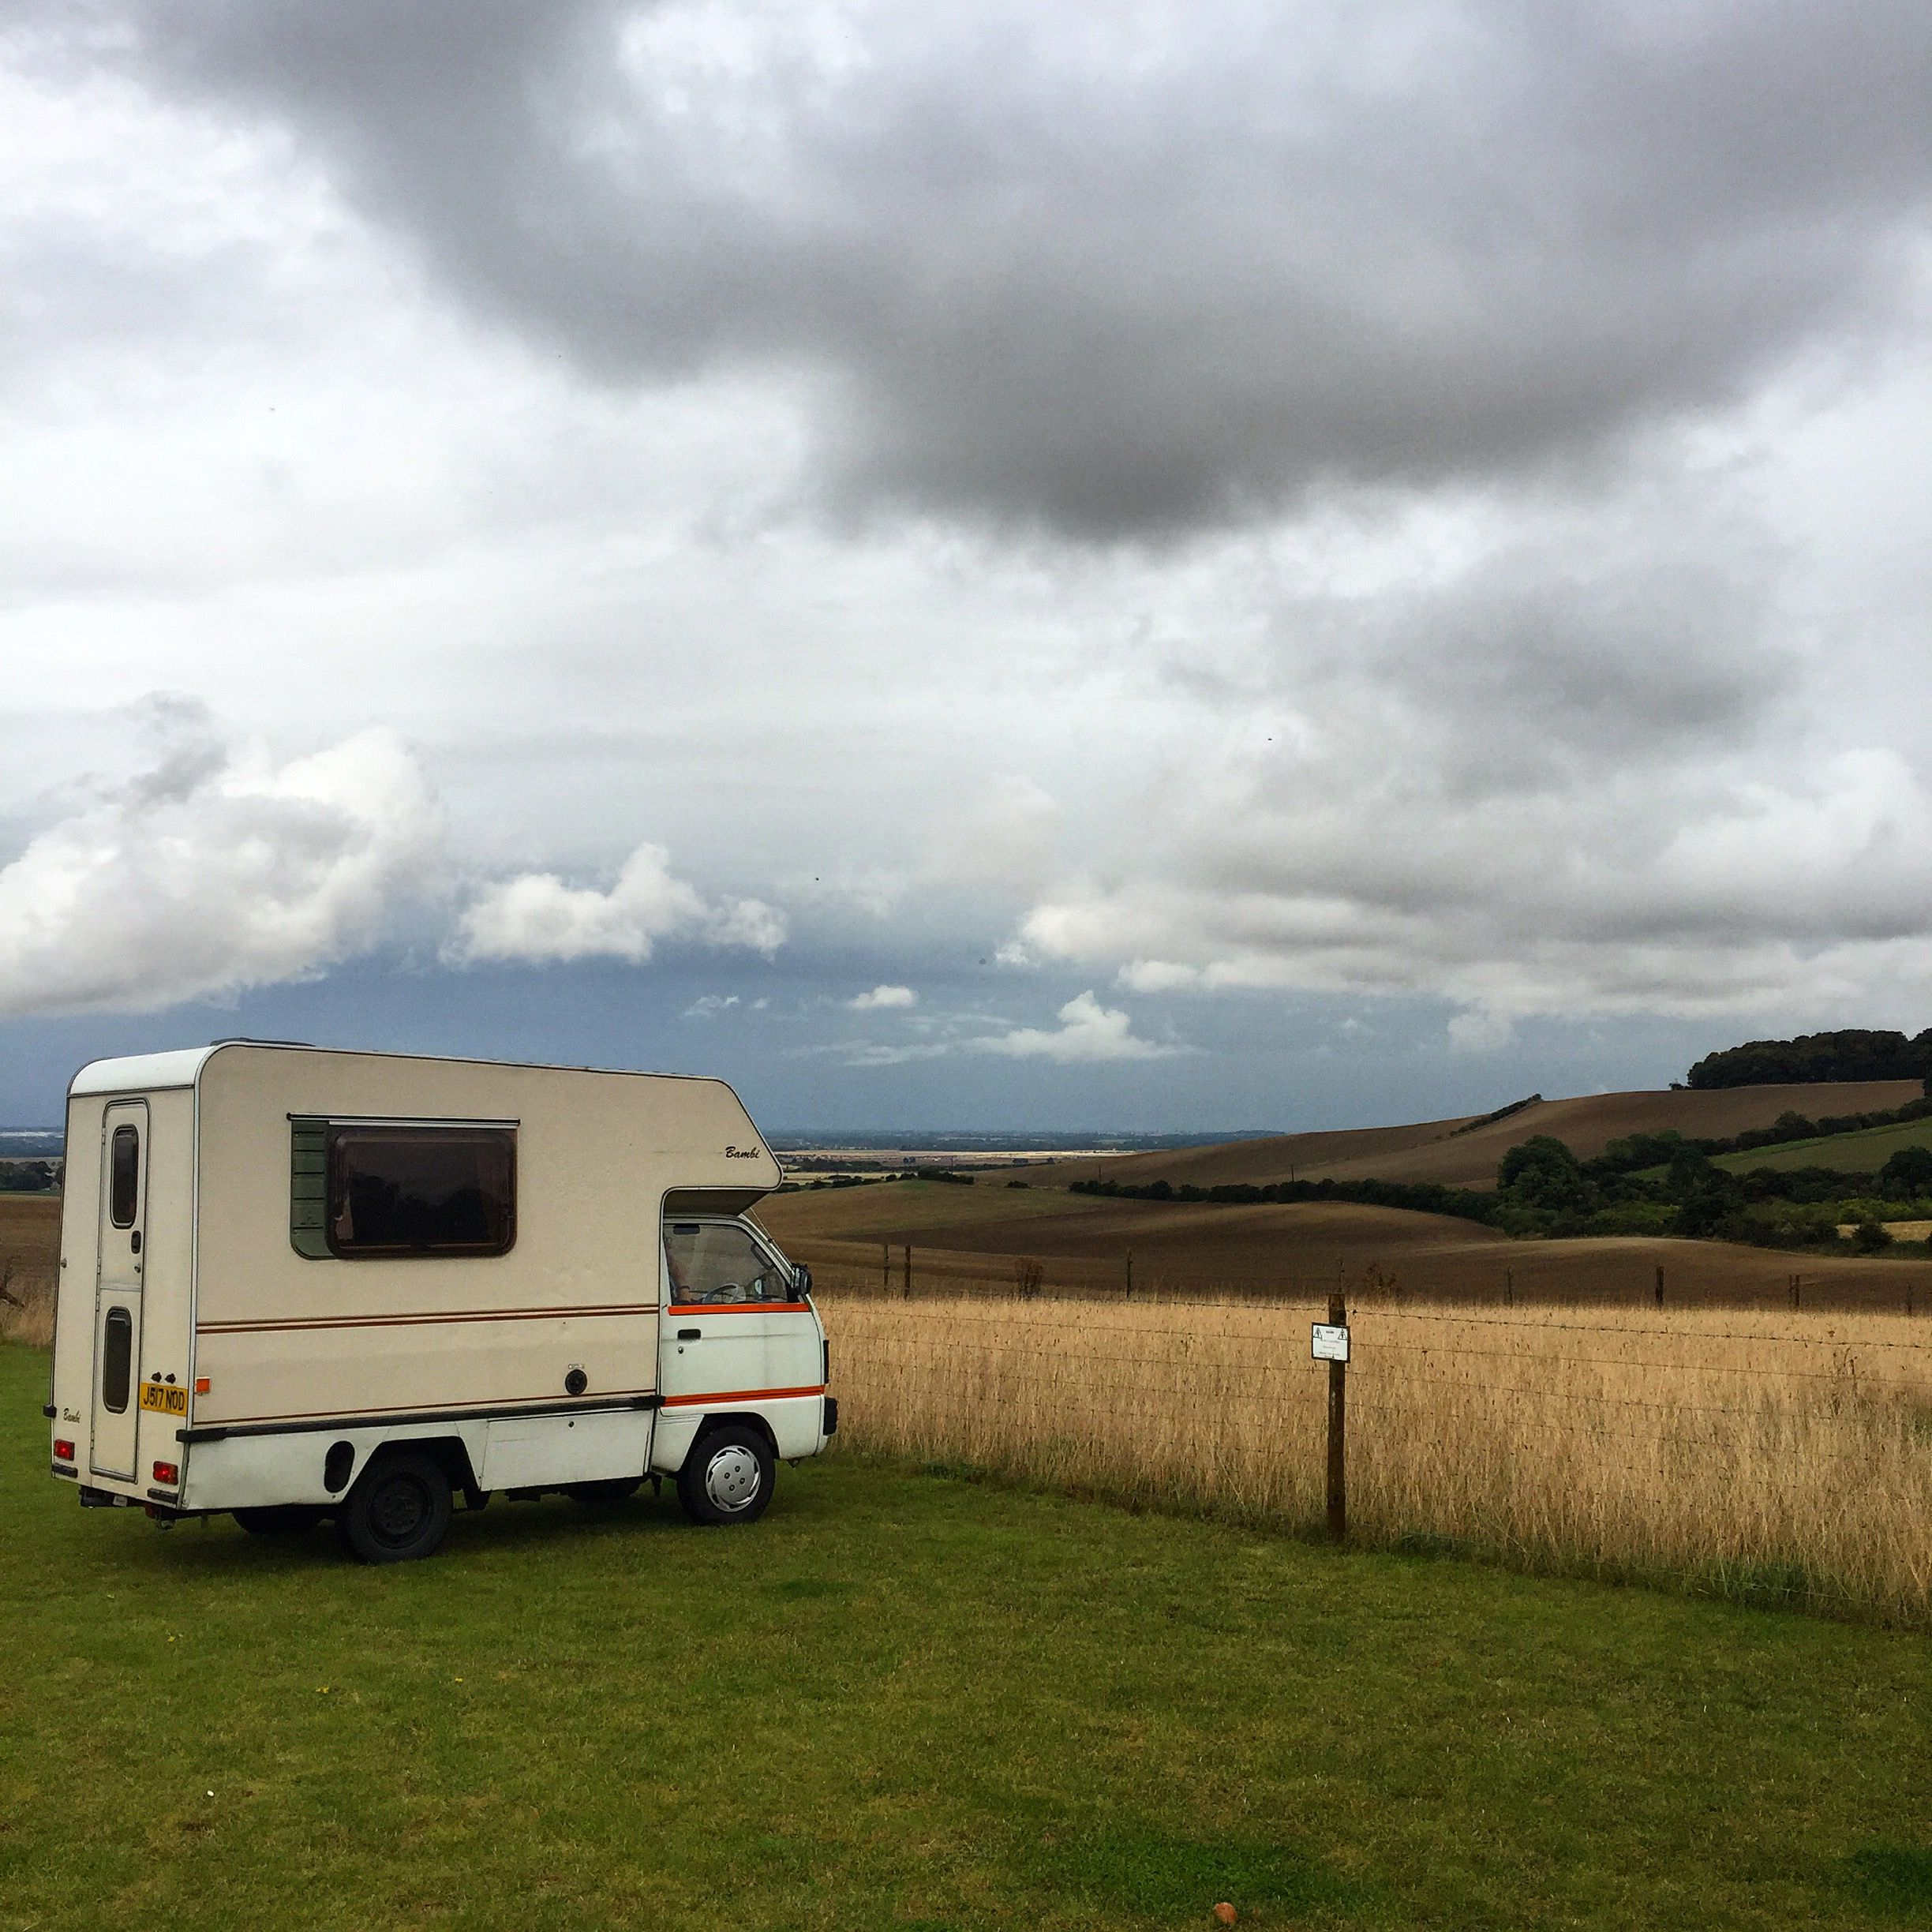 Having bought the little camper last week and already thought of a million and one things we could do to pimp her up, we figured the best thing to do was to try her out and see what we really neede…